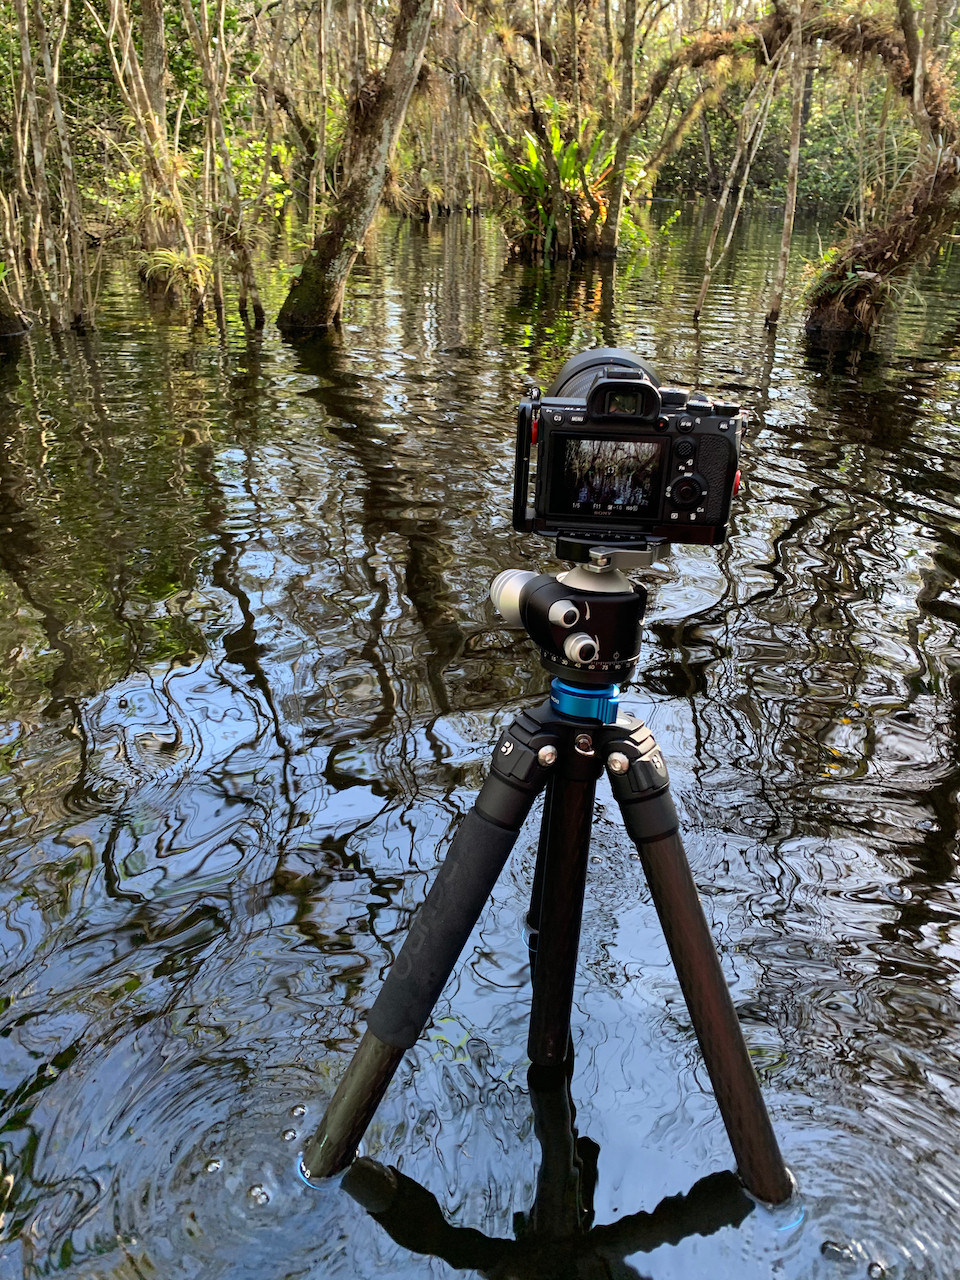 A camera is mounted on a tripod, half submerged in a swamp to capture the natural beauty of such a diverse biome